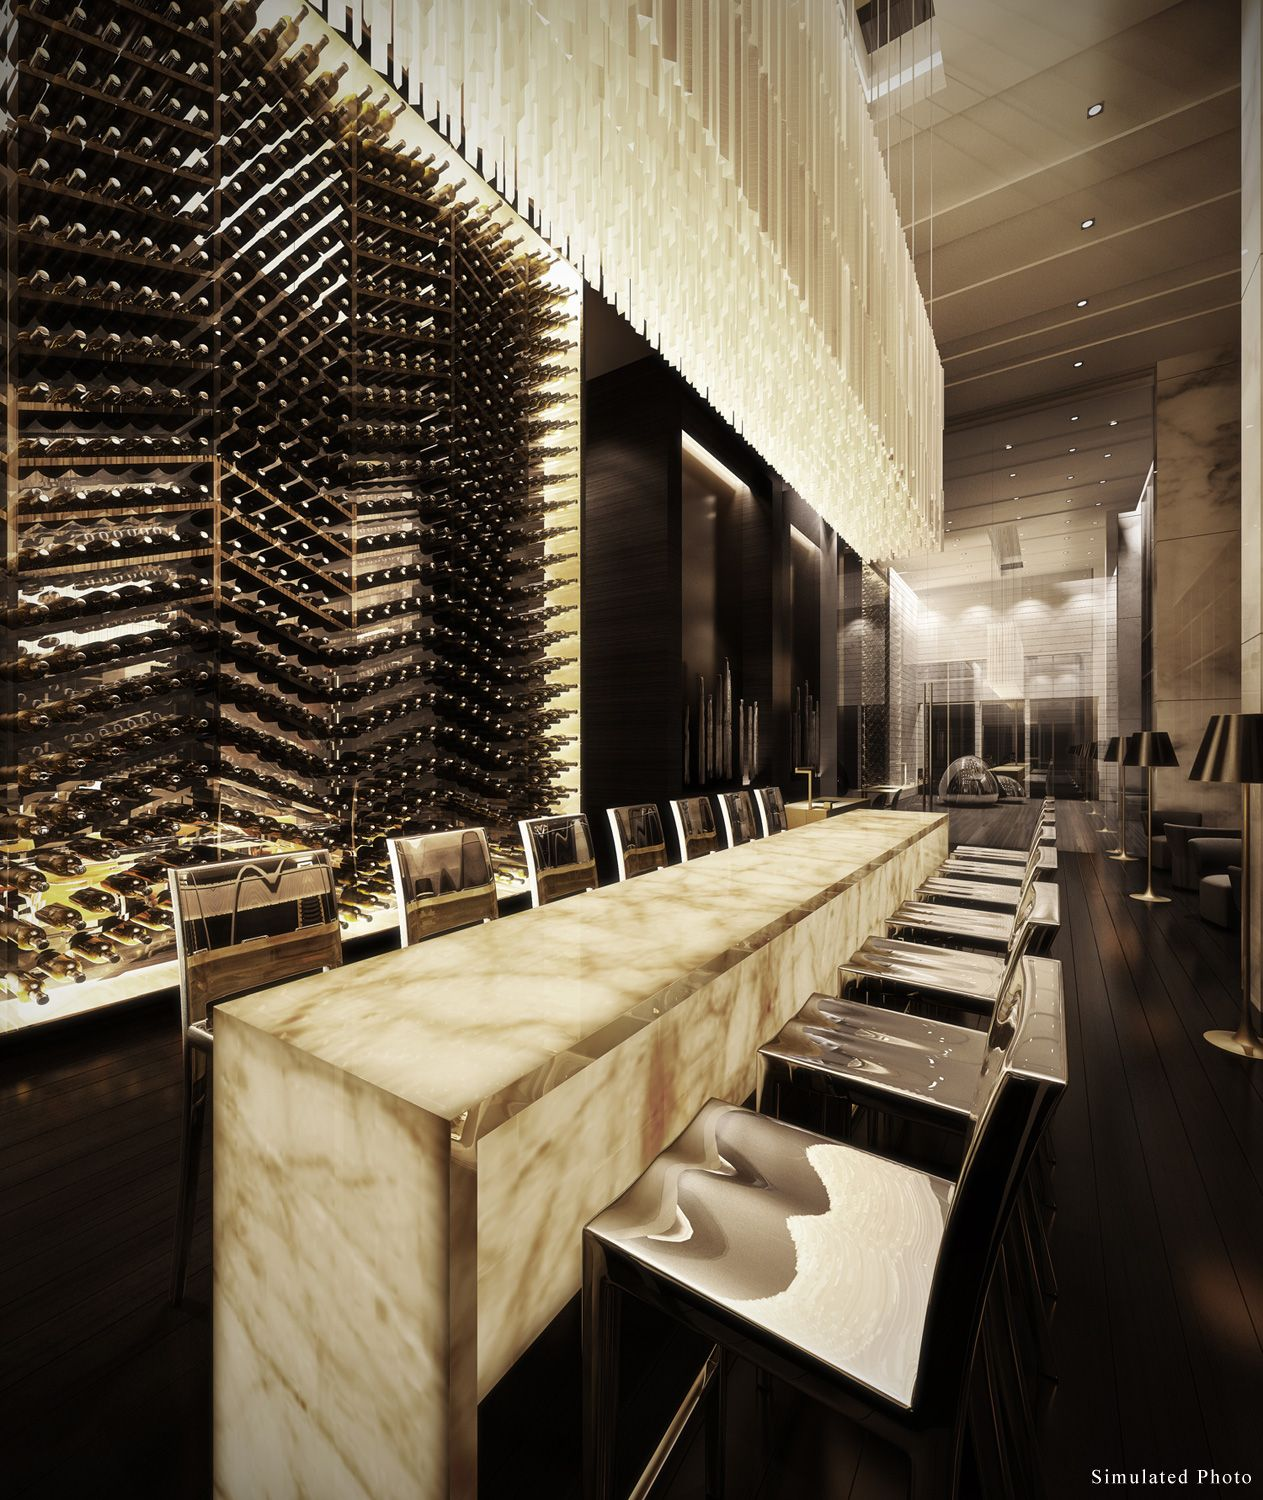 64 Best Bar Back Design Images On Pinterest: Ivy Ampio Restaurant Interior. This Would Be Really Cool